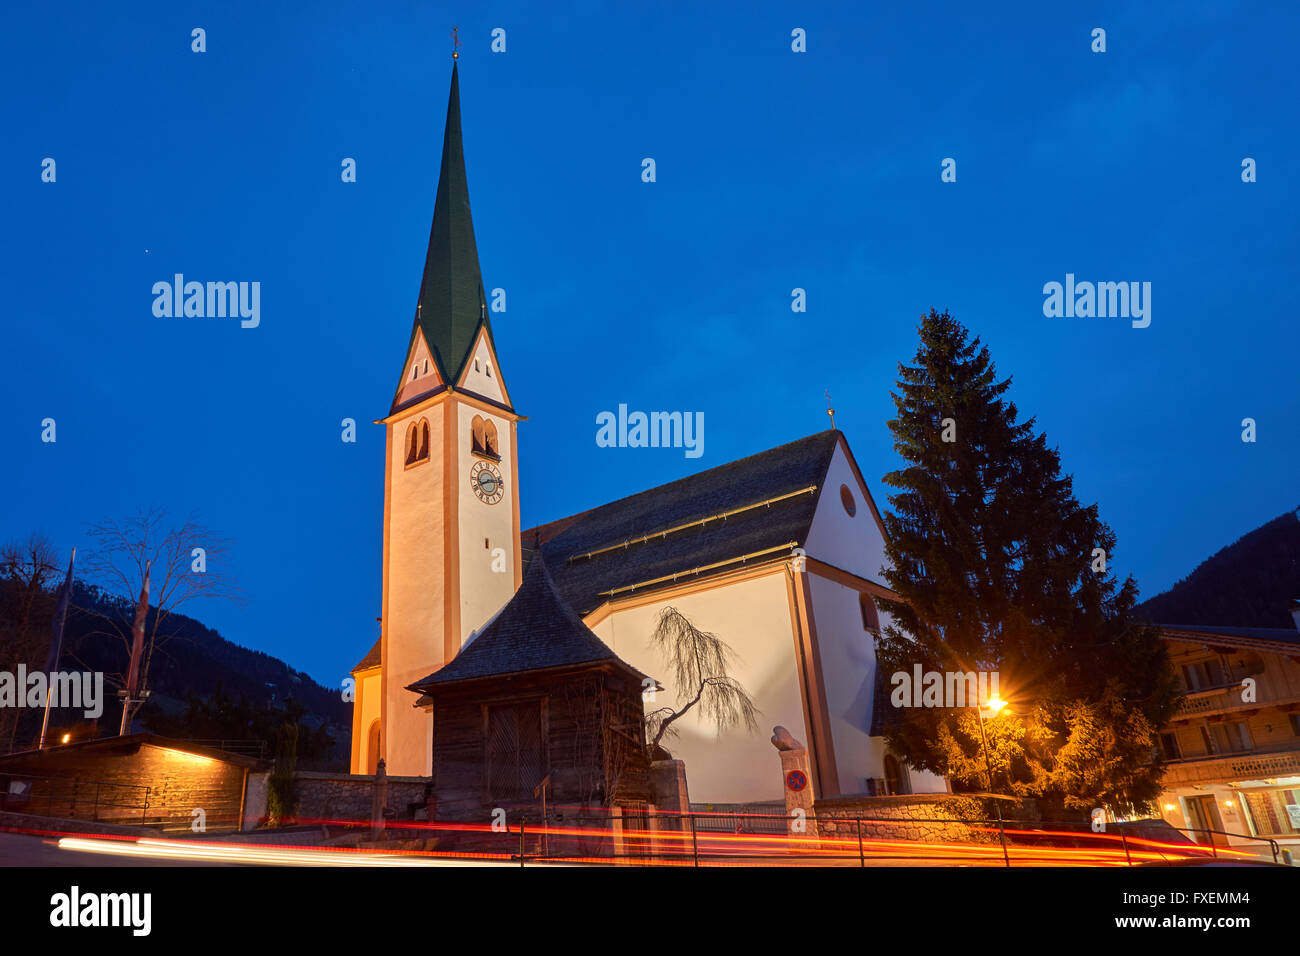 St Oswald's Church in Alpbach village, Tyrol region of Austria. Austria's prettiest village and well known - Stock Image